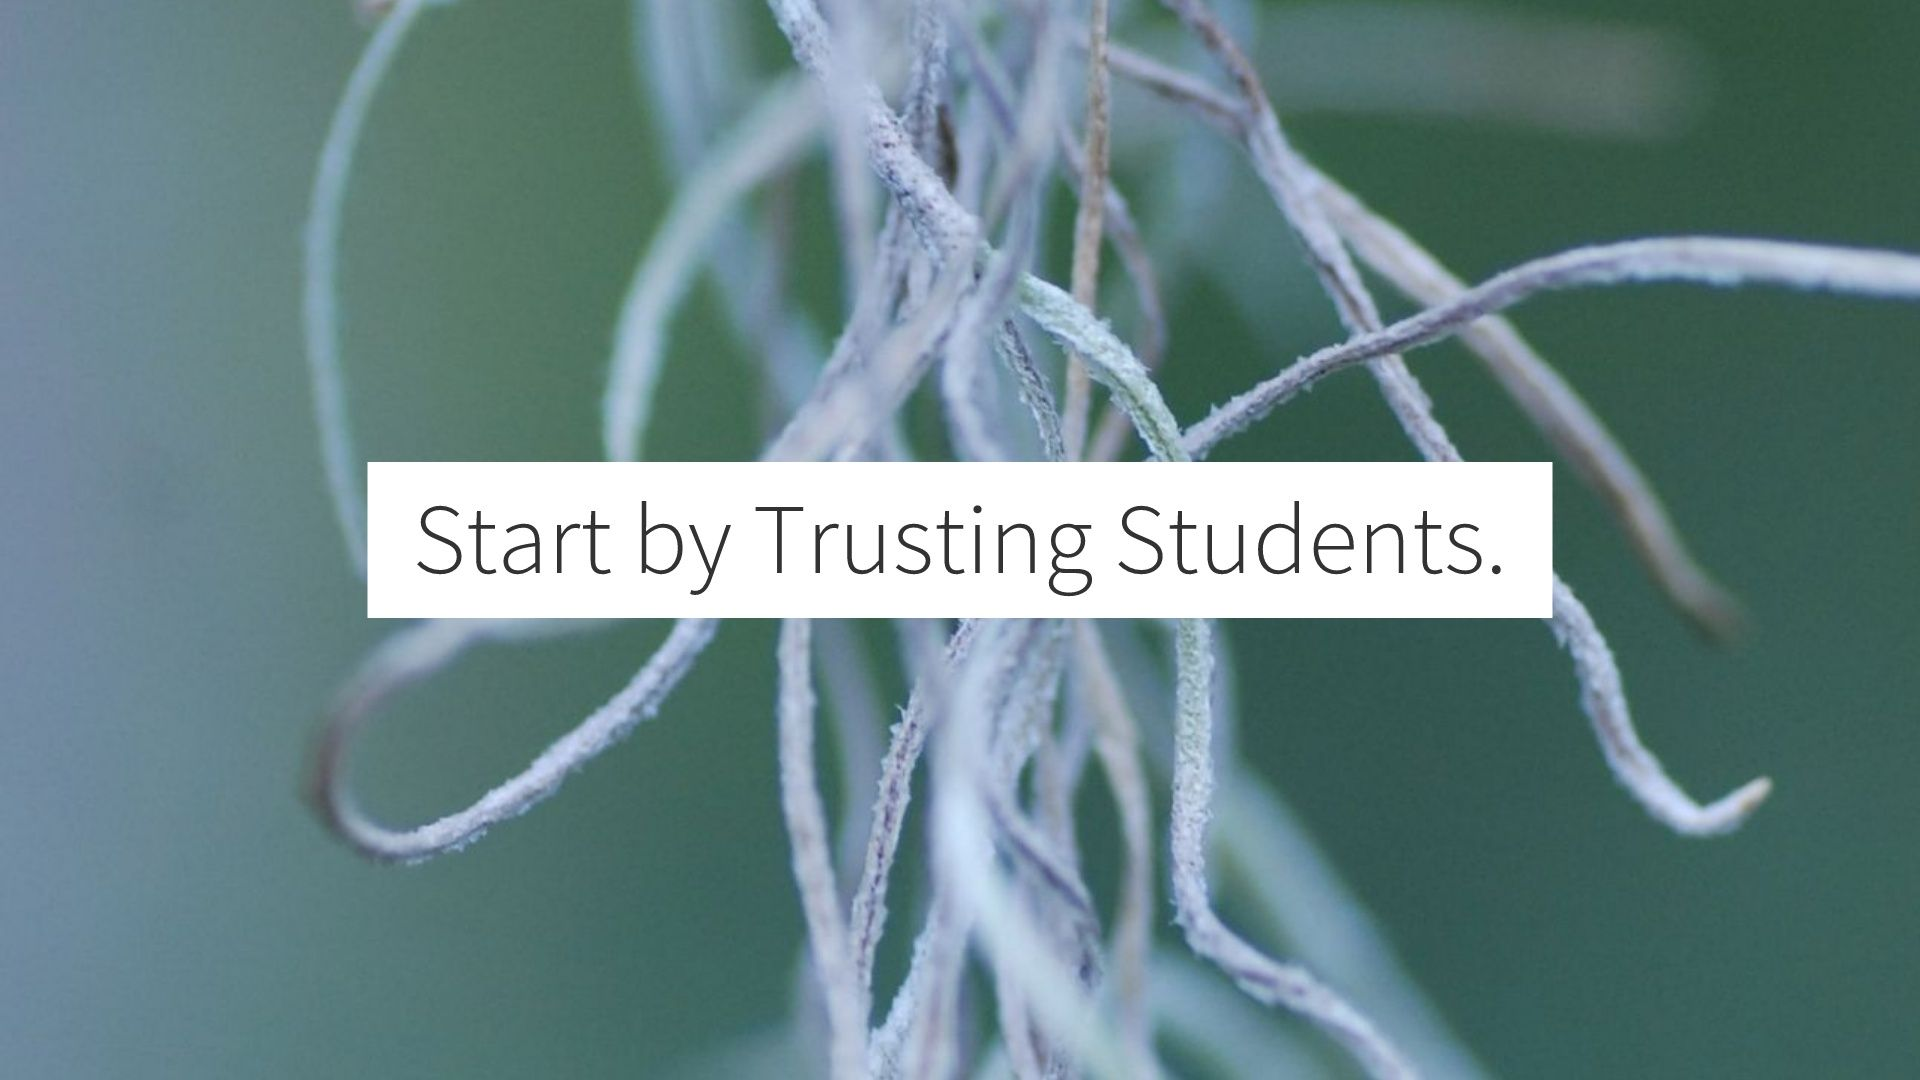 Start by Trusting Students w/ a sprig behind the words.